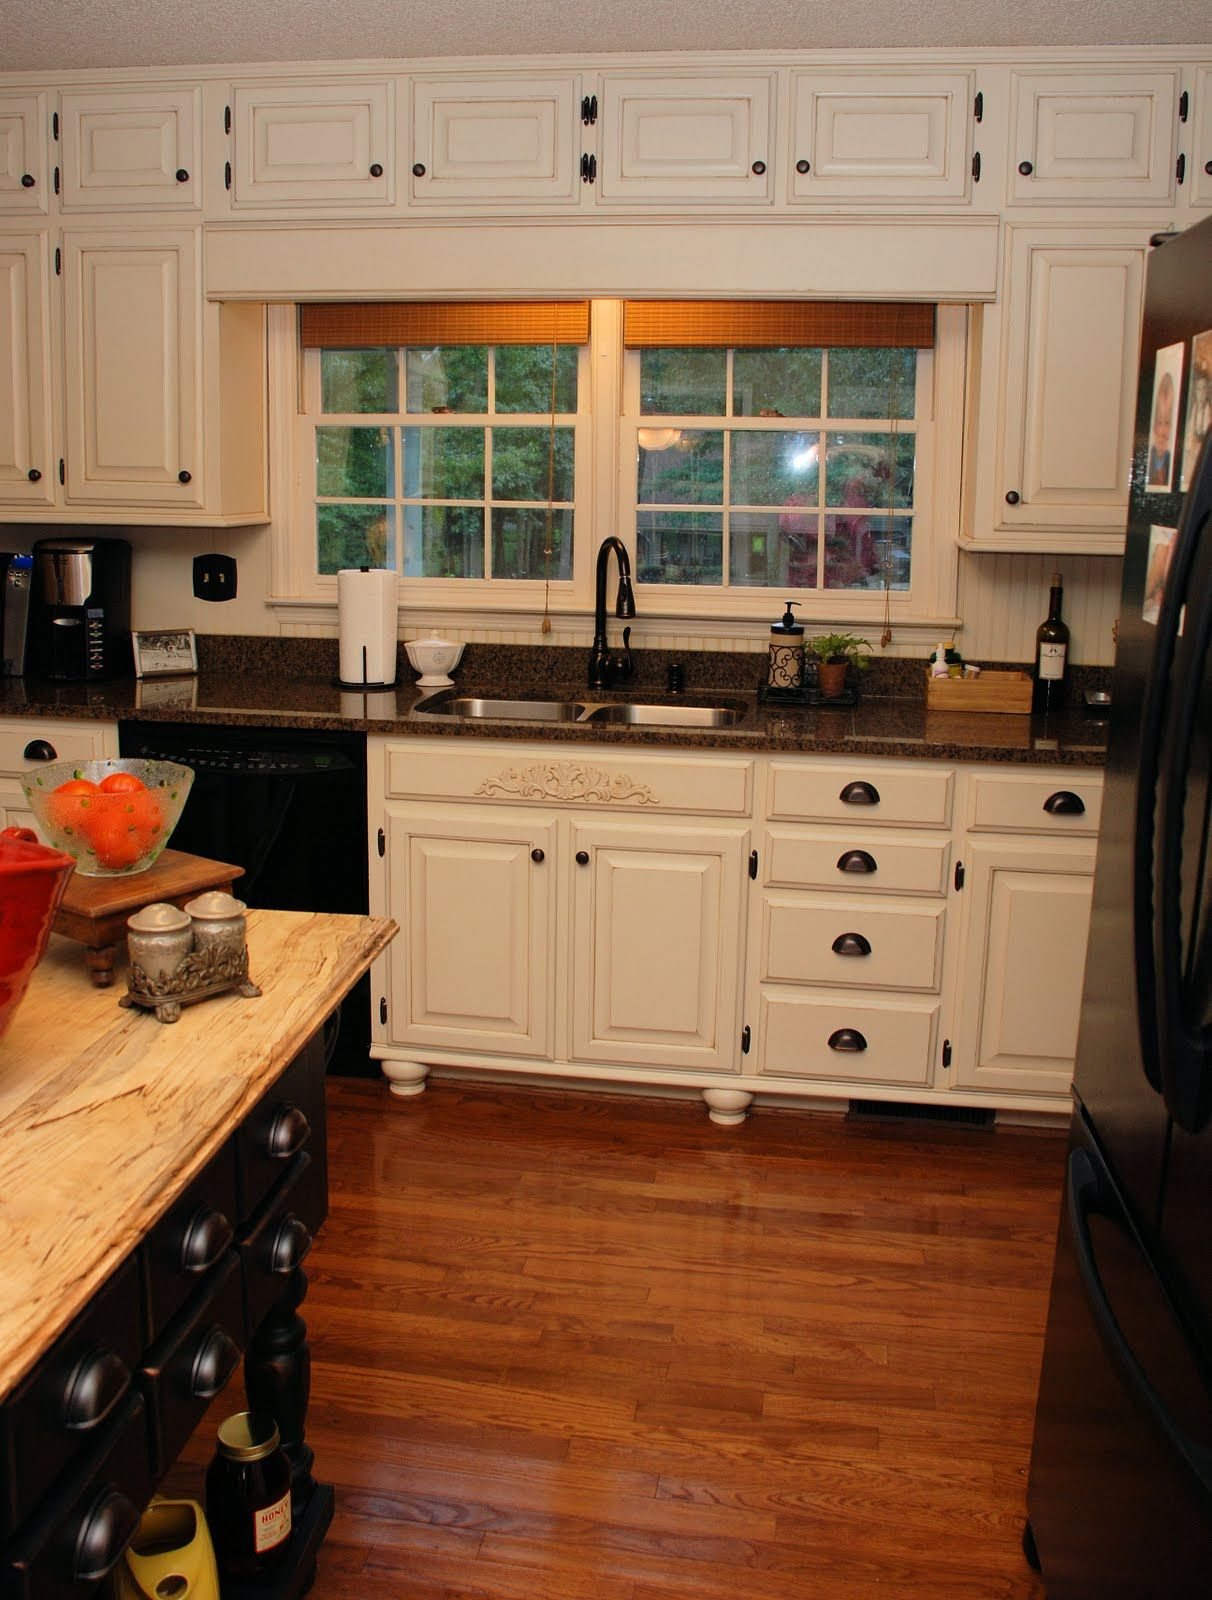 antique white kitchen cabinets with black appliances kitchen cabinets white 17 Best images about painted kitchen cabinets on Pinterest Antique white kitchens Cabinets and